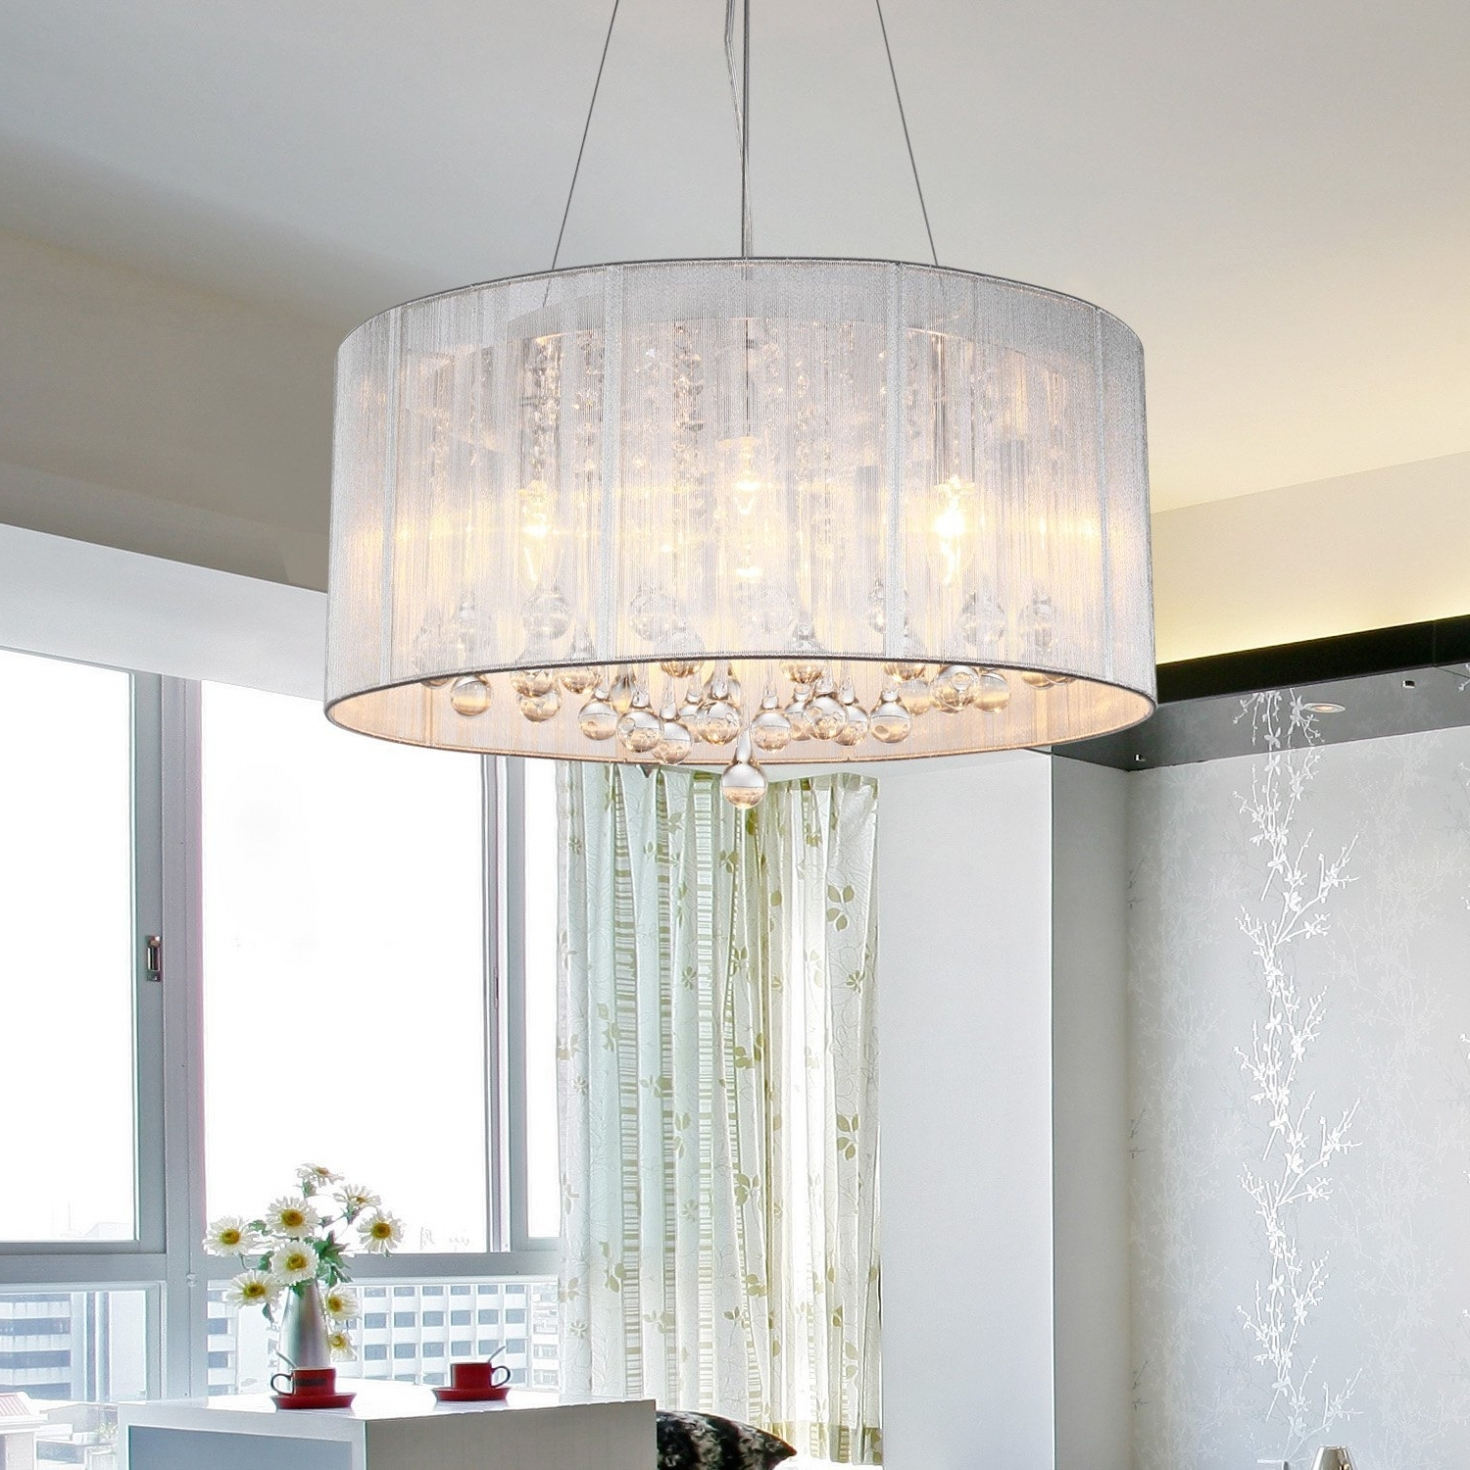 Large Contemporary Chandeliers Pertaining To Best And Newest Home Decor: Chandeliers Design : Fabulous Drumb Contemporary (View 13 of 20)